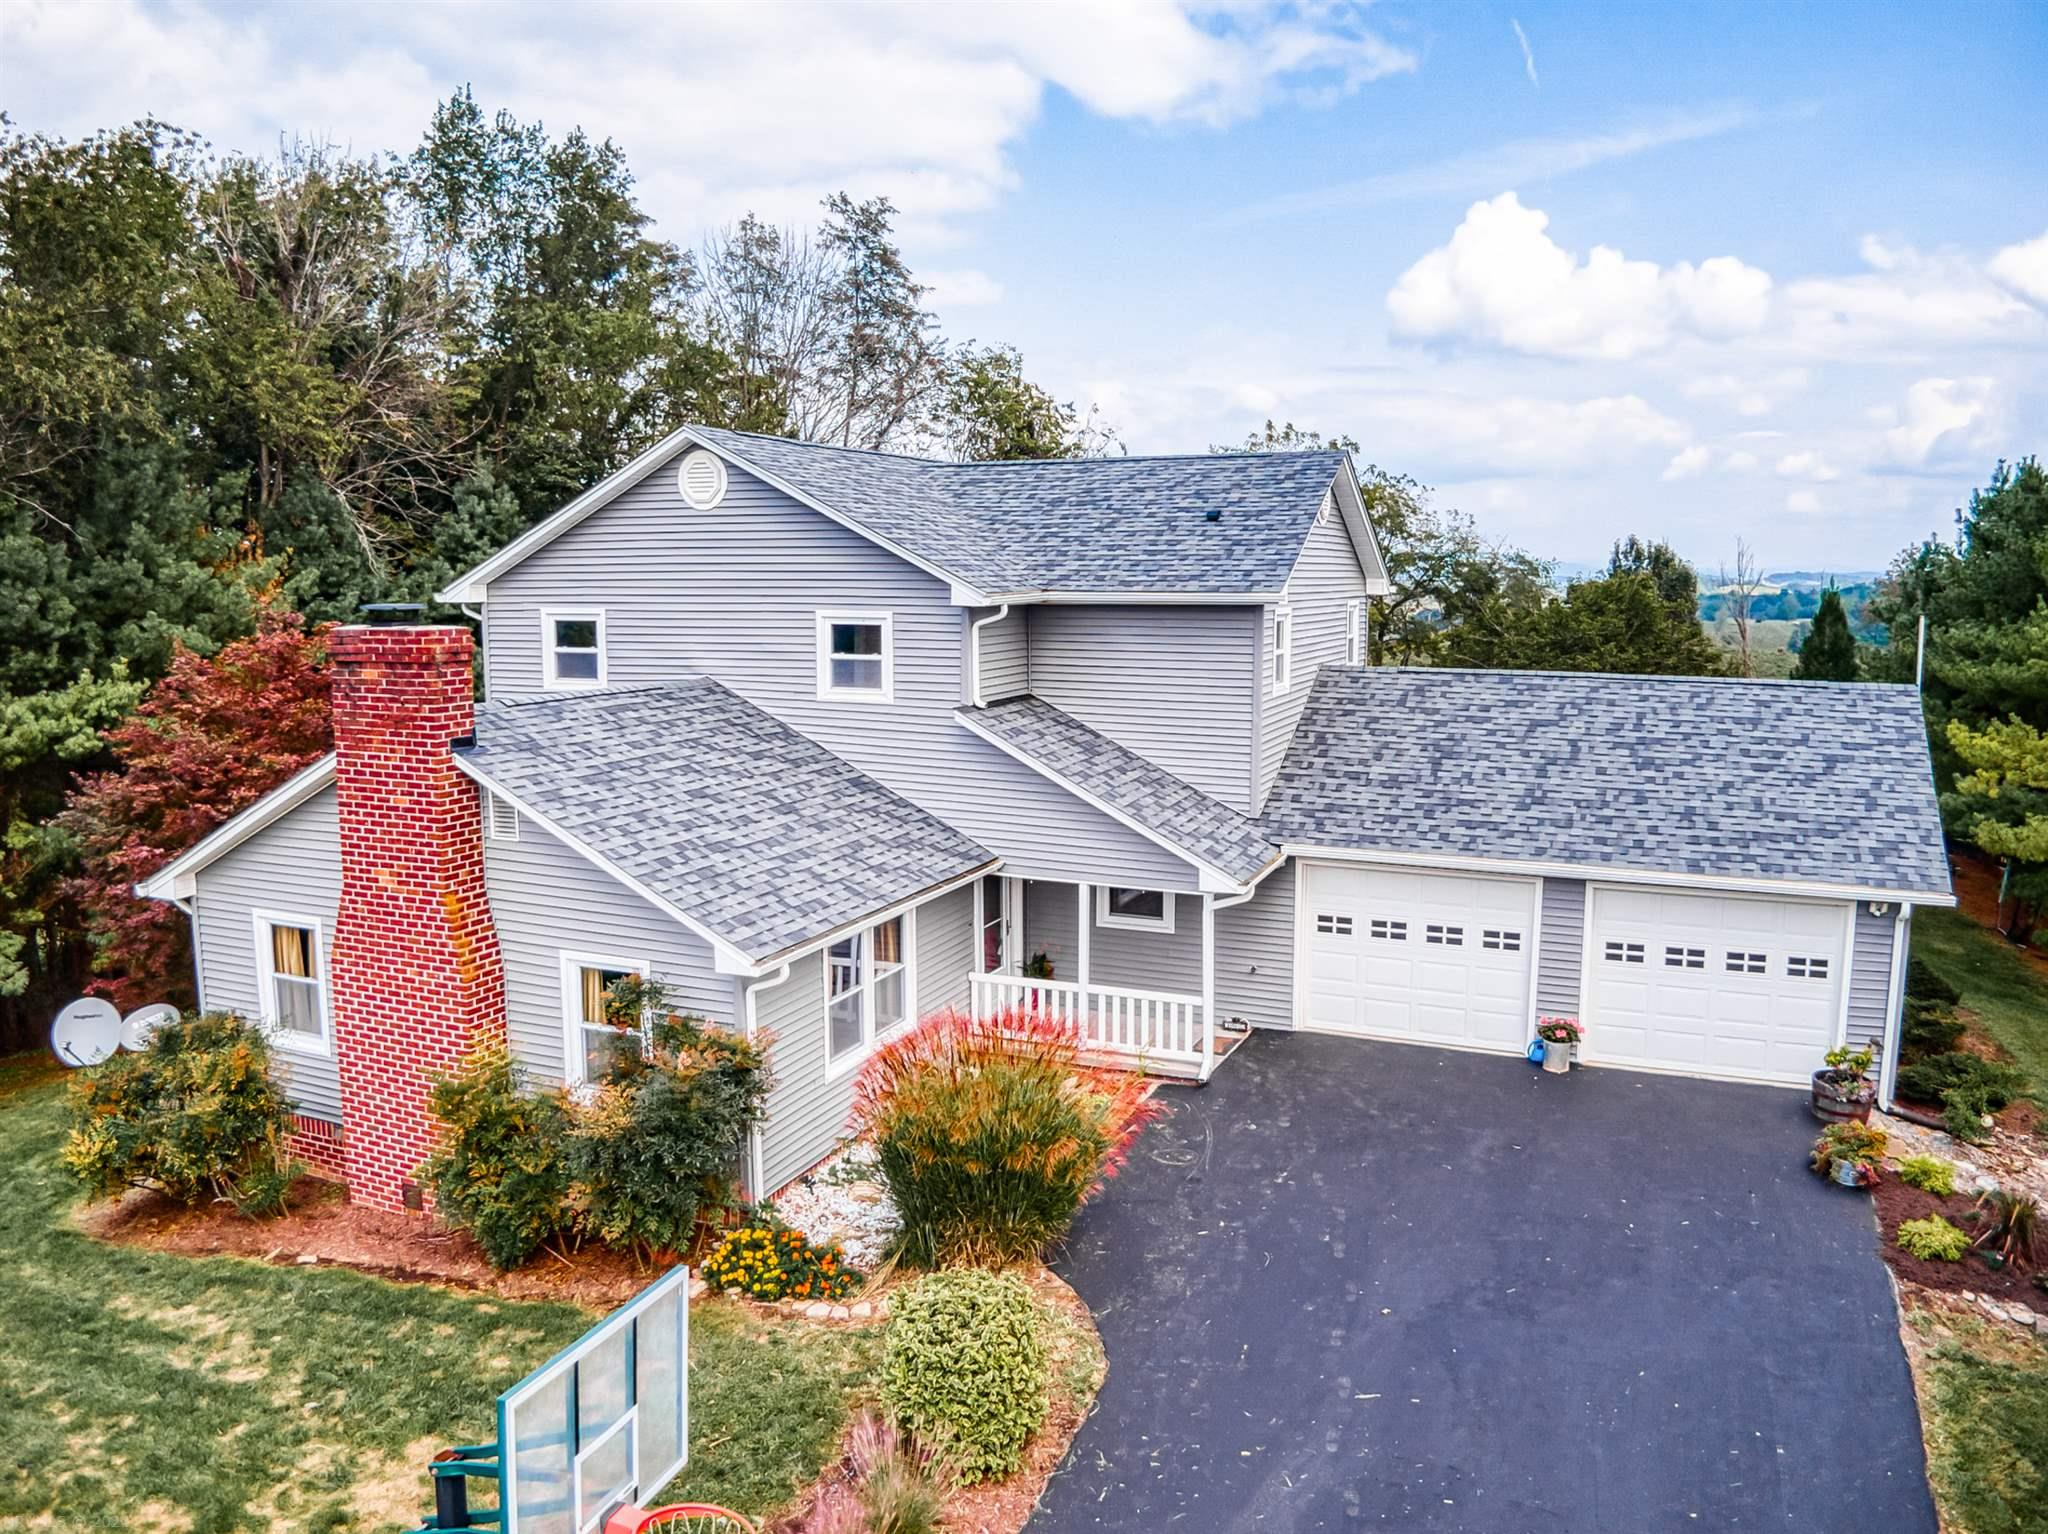 • Extremely Well-Maintained App. 2,674 Sq. Ft.  – 4 BR – 2.5 BA Home; • Mini-Farm – 5.479 Acres – Fencing, Barns, Automatic Watering; • Tree-Lined Newly Sealed Paved Driveway; • NEW: Roof, Siding, Deck, Patio, Flooring, Interior Painting, Countertops,          Backsplash, And Many More Updates!! • Vaulted Ceiling, Exposed Beams, Fireplace, Laundry On Main; • Nice Finished Basement, LOTS Of Storage!!